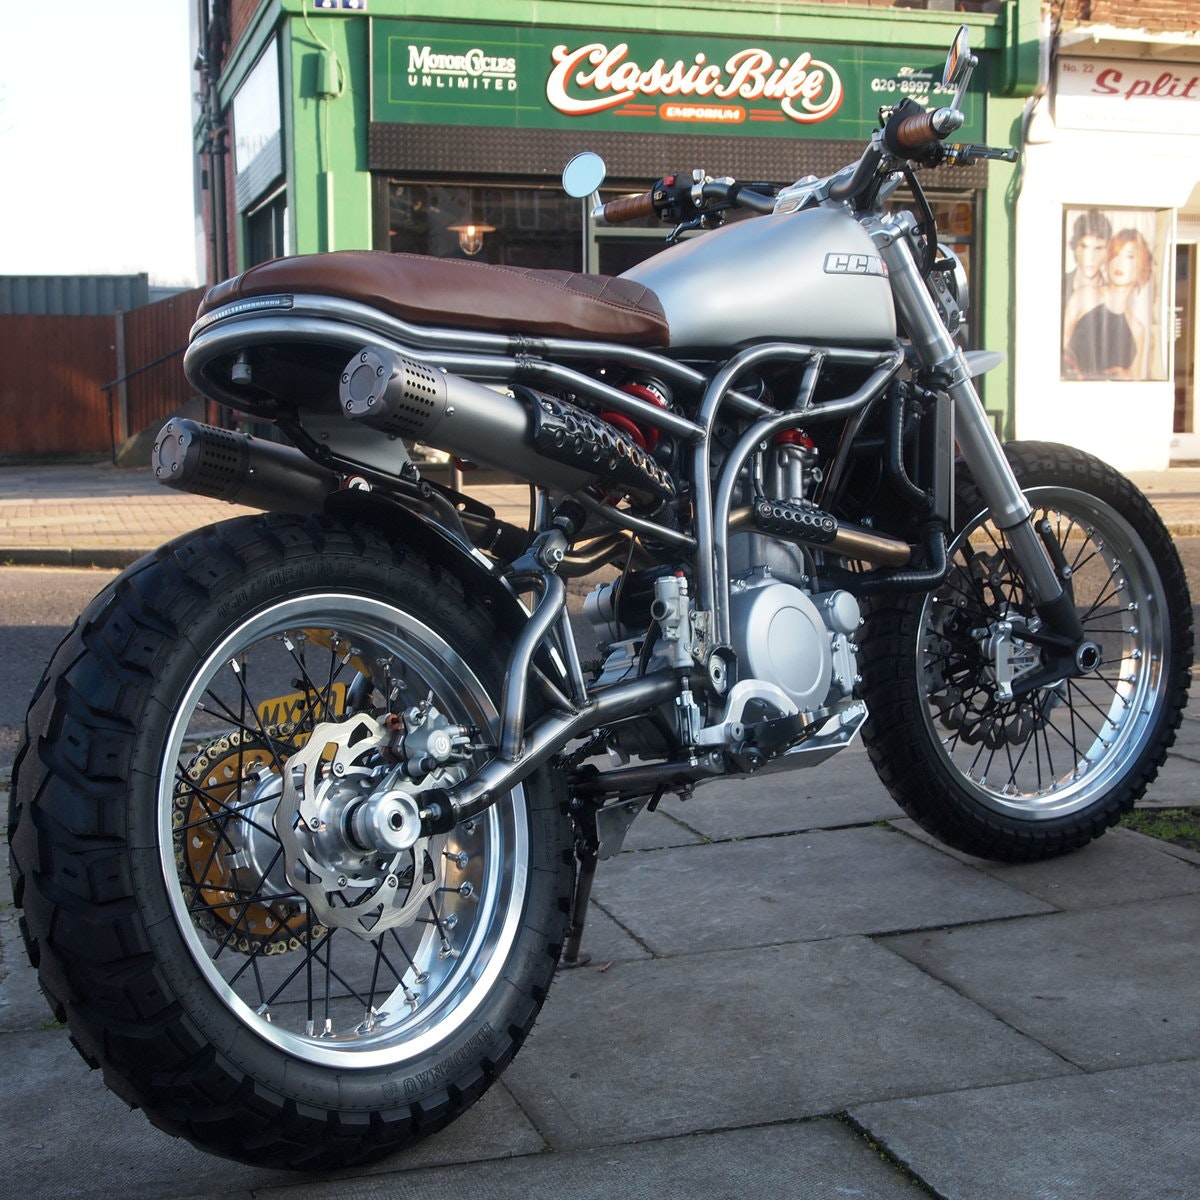 2018 CCM 600cc Spitfire Scrambler, RESERVED FOR ANDY. SOLD (picture 1 of 6)